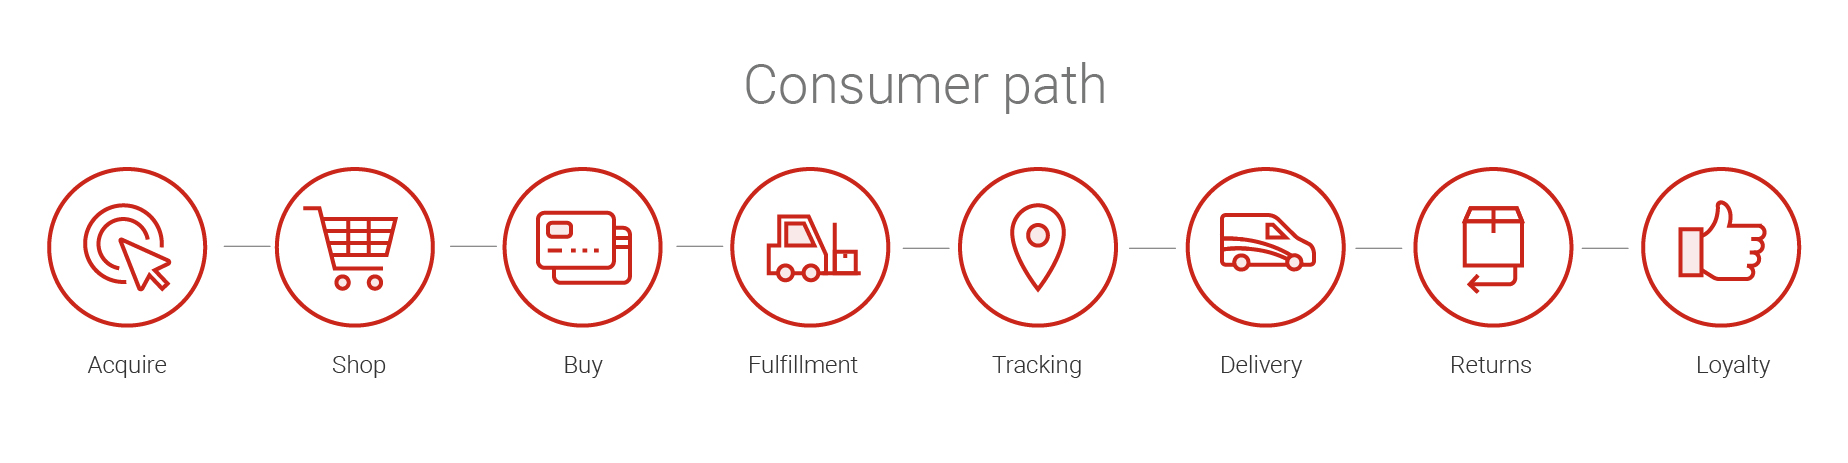 Infographic. The consumer path: acquire, shop, buy, fulfillment, tracking, delivery, returns and loyalty.